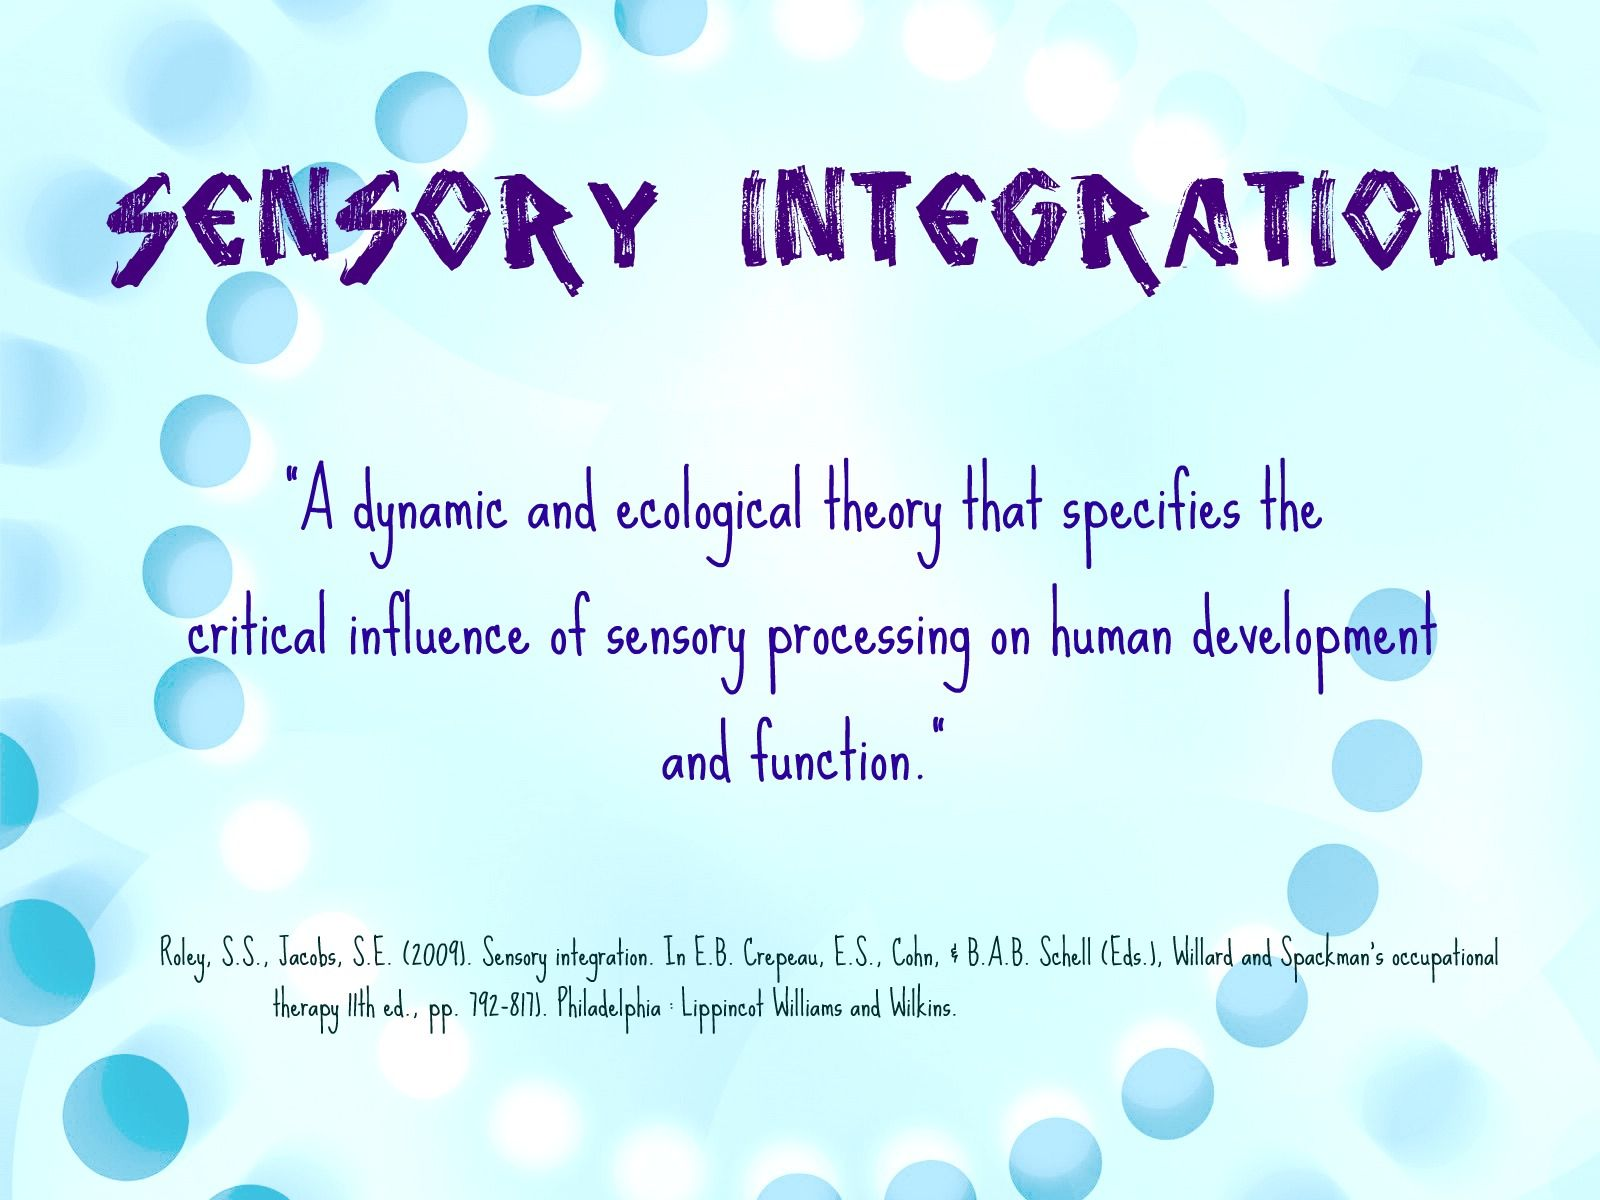 Definition Of Sensory Integration From Willard And Spackman